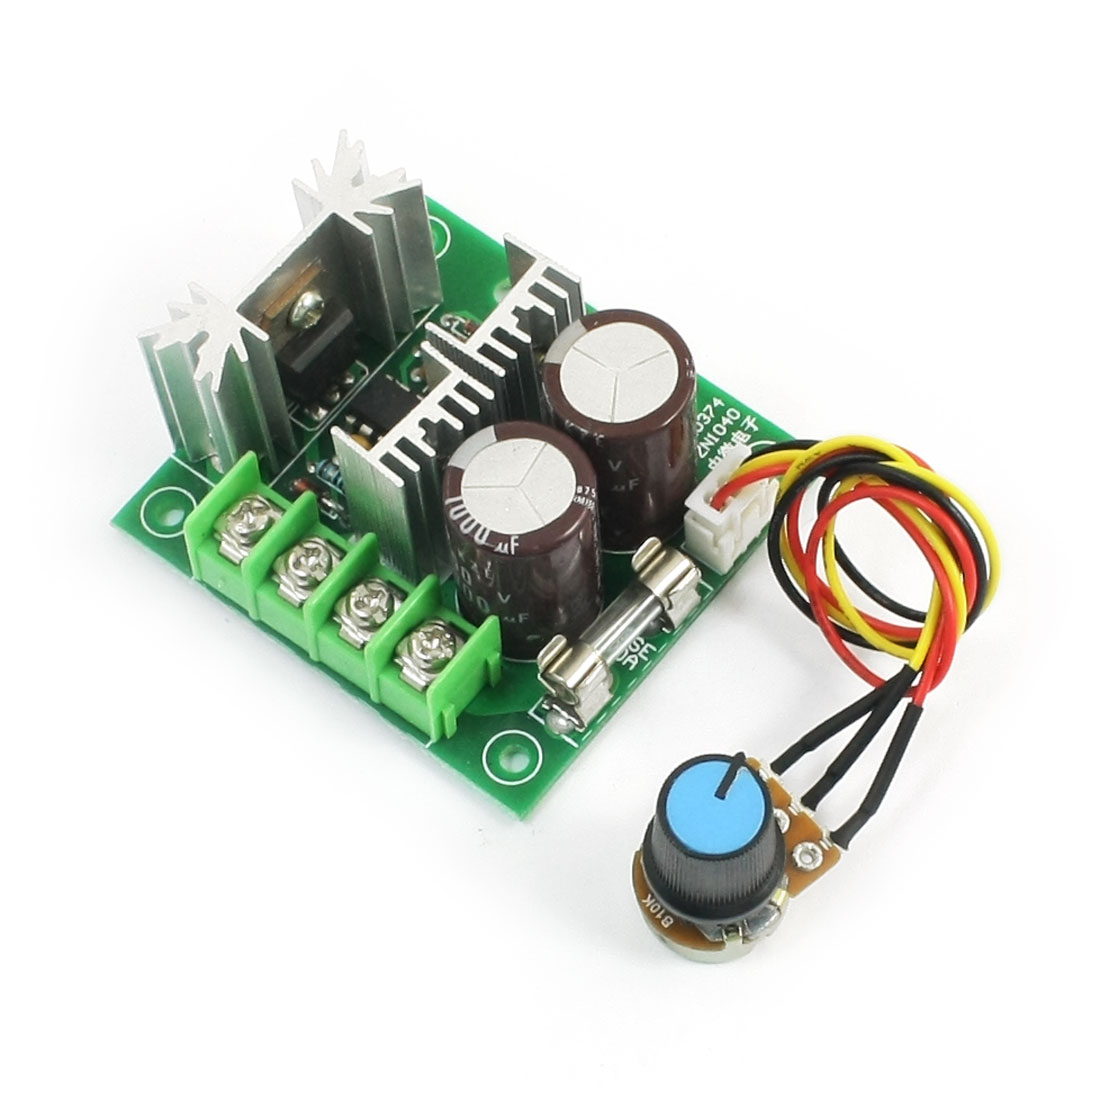 Rotary Potentiometer Adjustable Pulse Width Modulation PWM Motor Speed Control Switch Governor DC 12V-40V 400W